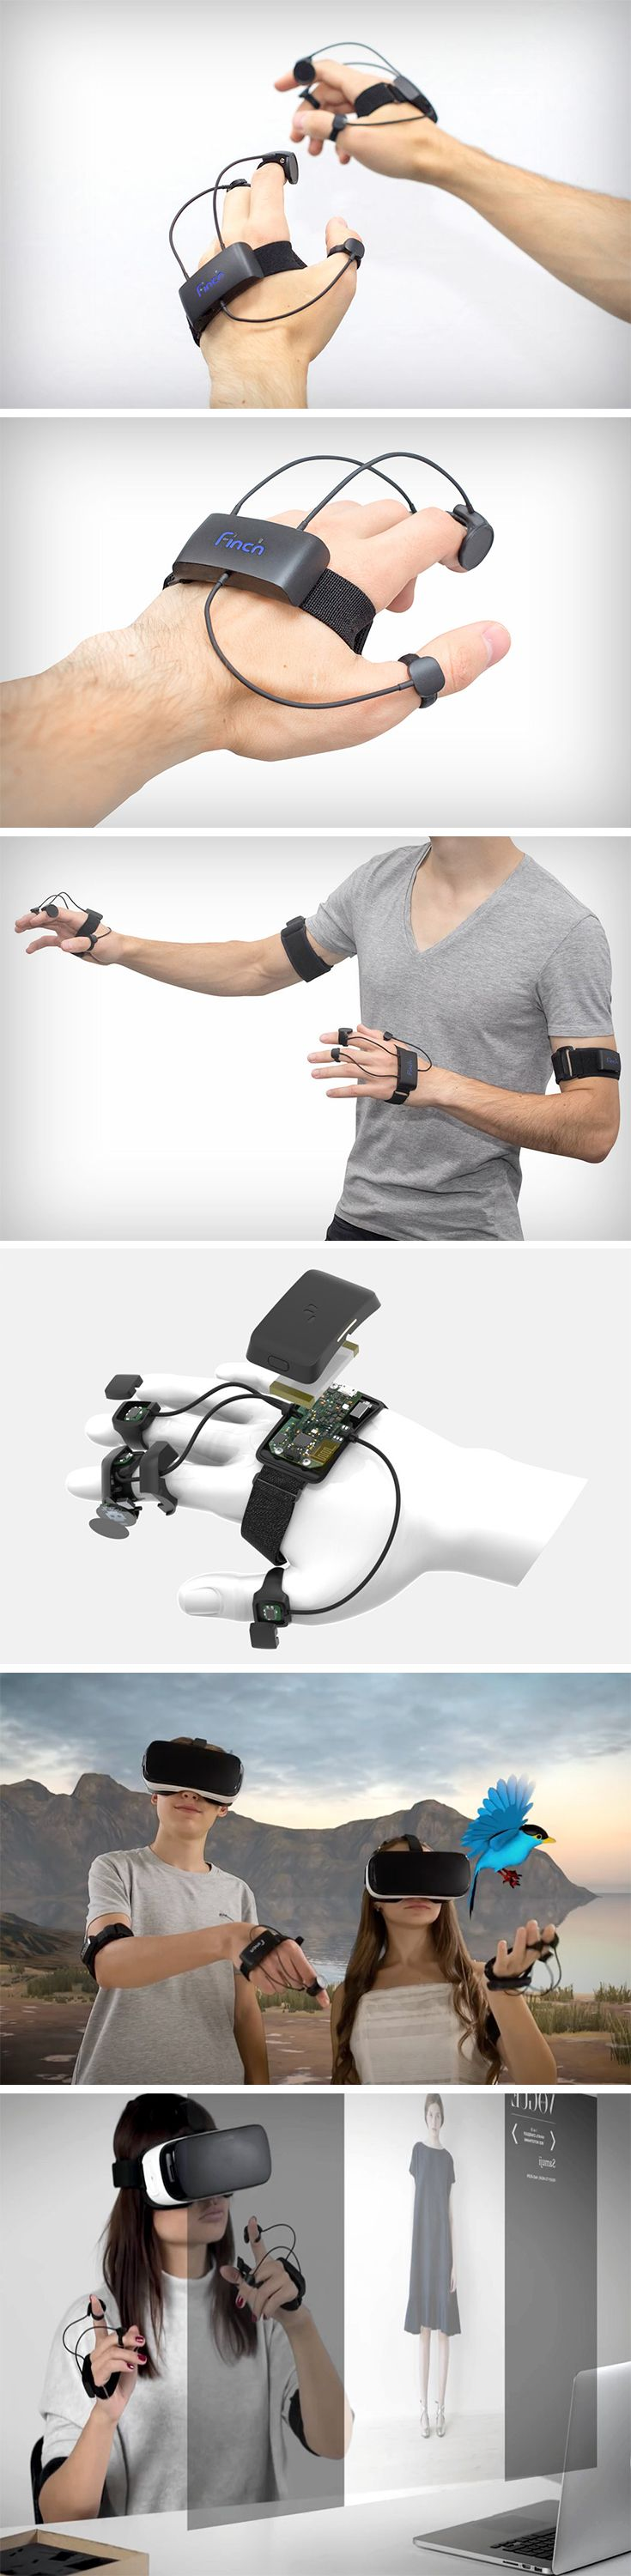 While there have been some dramatic changes made with headsets since its inception, there hasn't been nearly half as many with VR controllers. That's where Andrey Dalakishvili & Mikhail Oleynikov come in, the creators of Finch Hands – the digital controller that combines the convenience of the glove and functionality of the gamepad. Finch is suitable for hands of all sizes and shapes and can't be dropped, which detracts from the experience using other digital controllers.